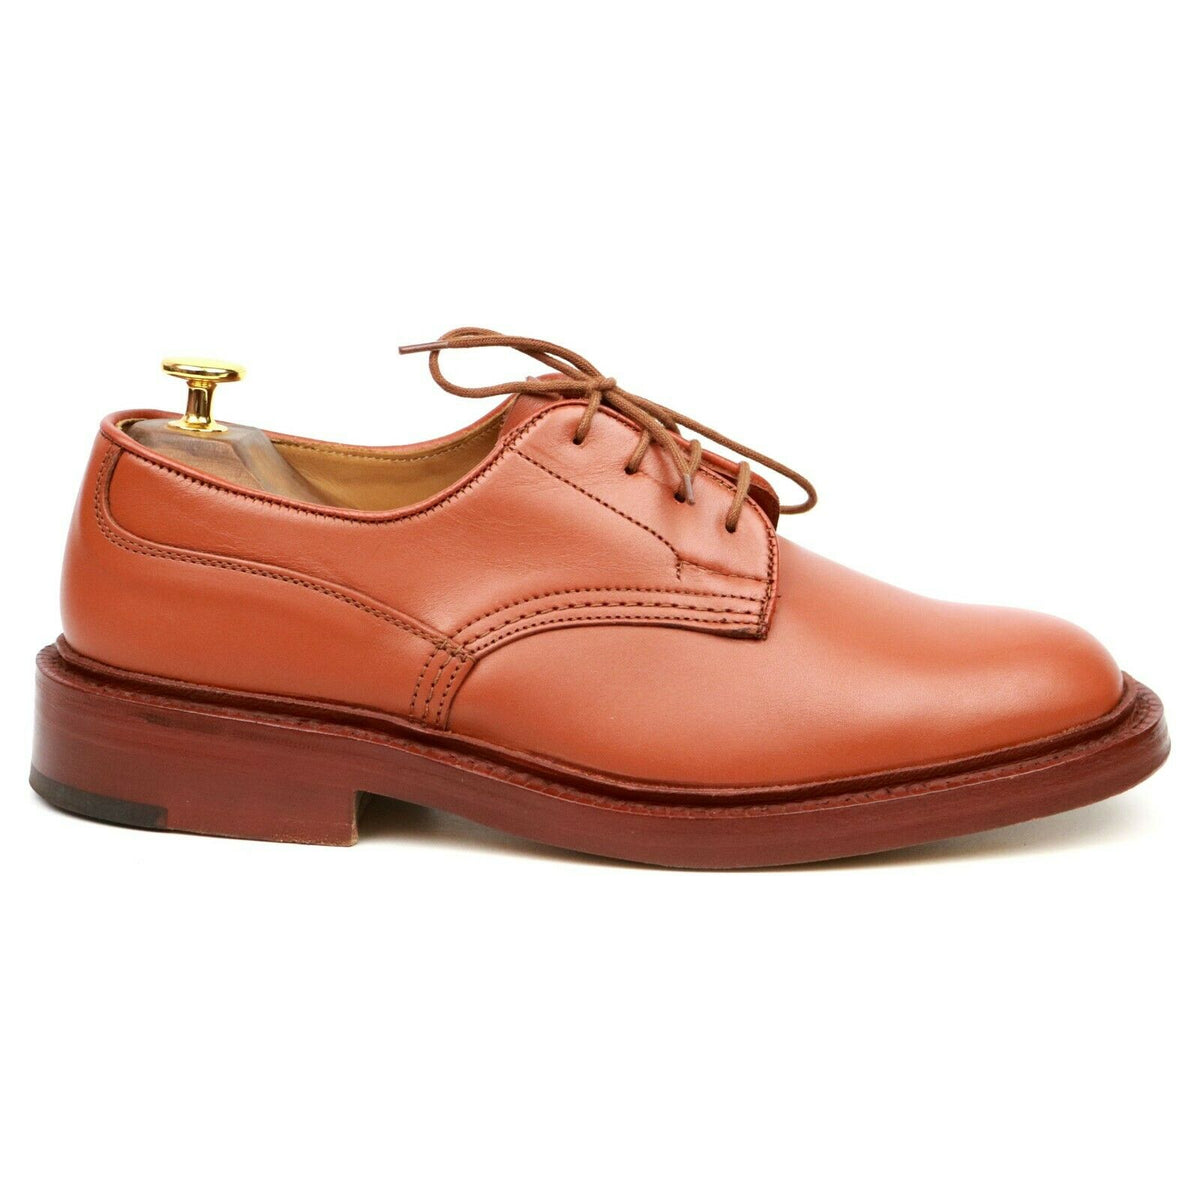 Tricker's 'Kendal' Tan Brown Leather Derby UK 6.5